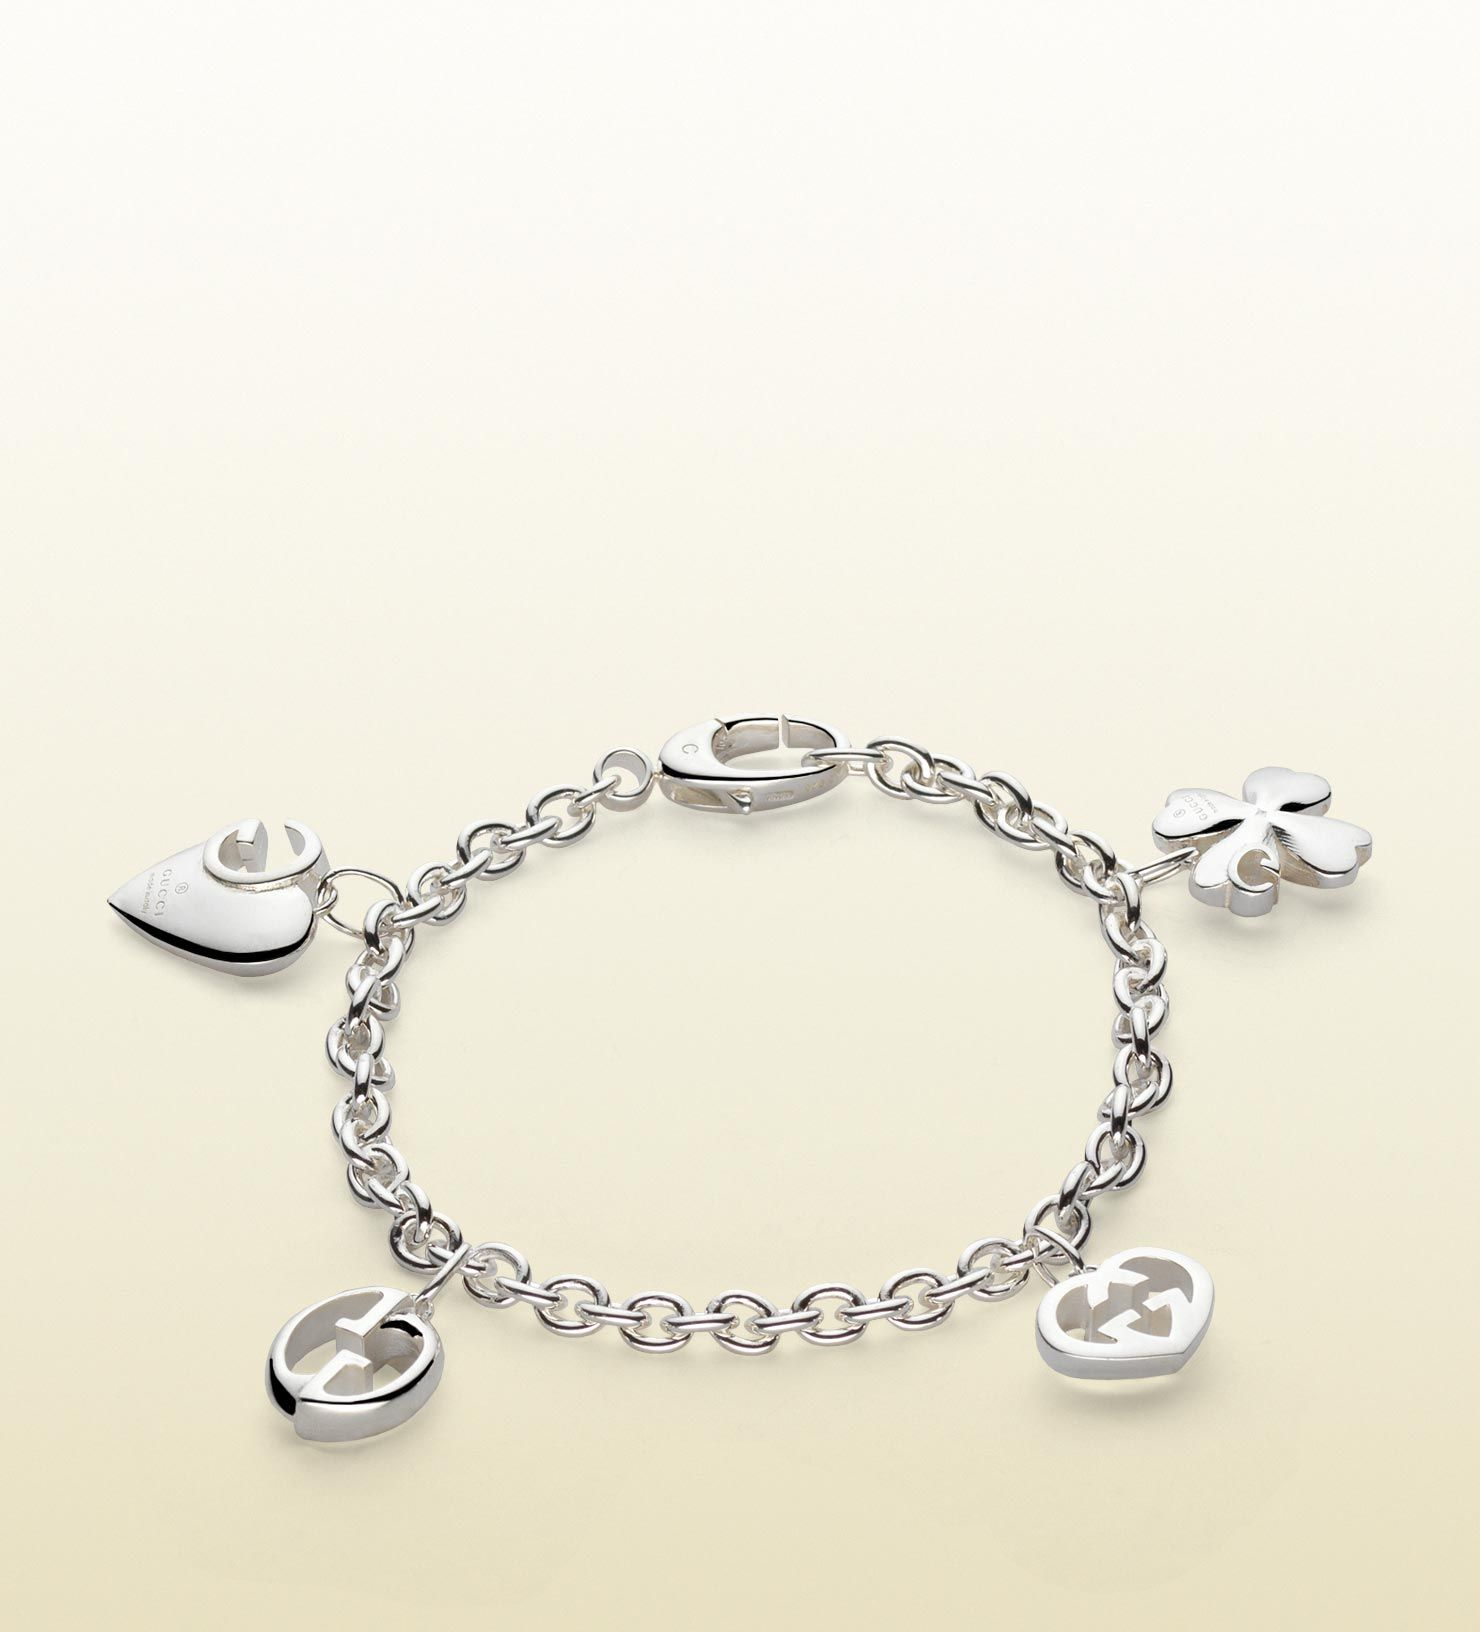 Sterling silver Gucci bracelet with charms